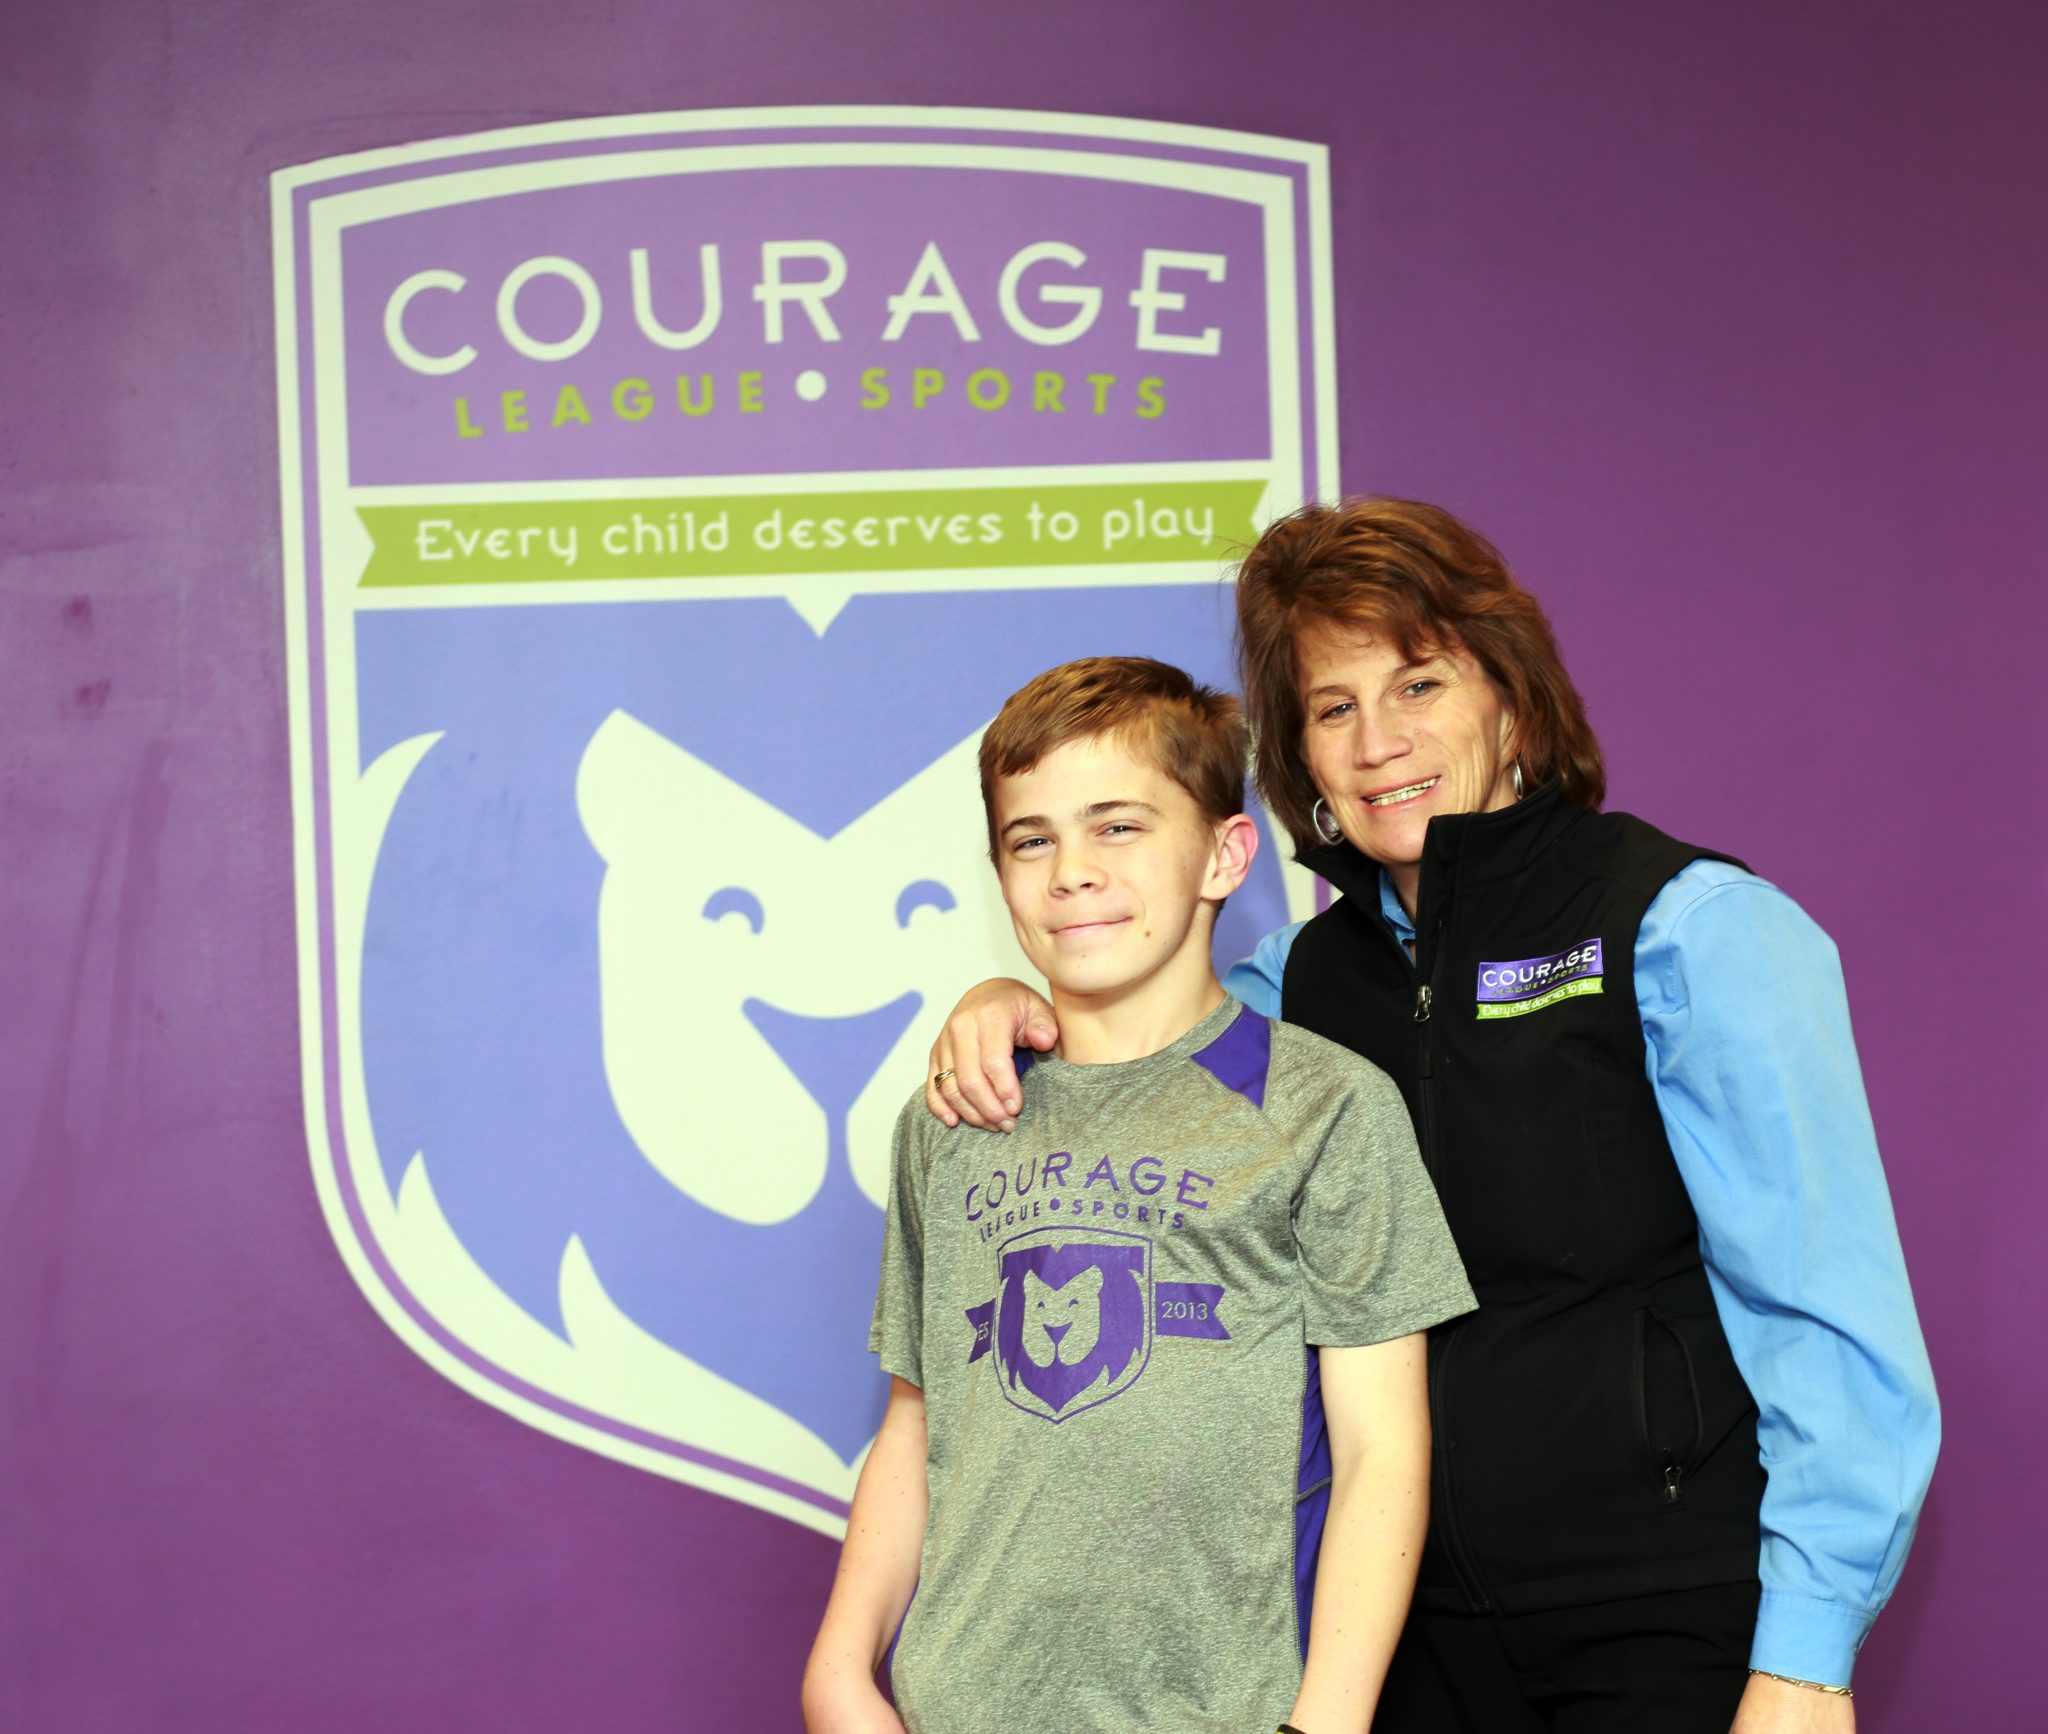 Courage League Sports: Life Moments